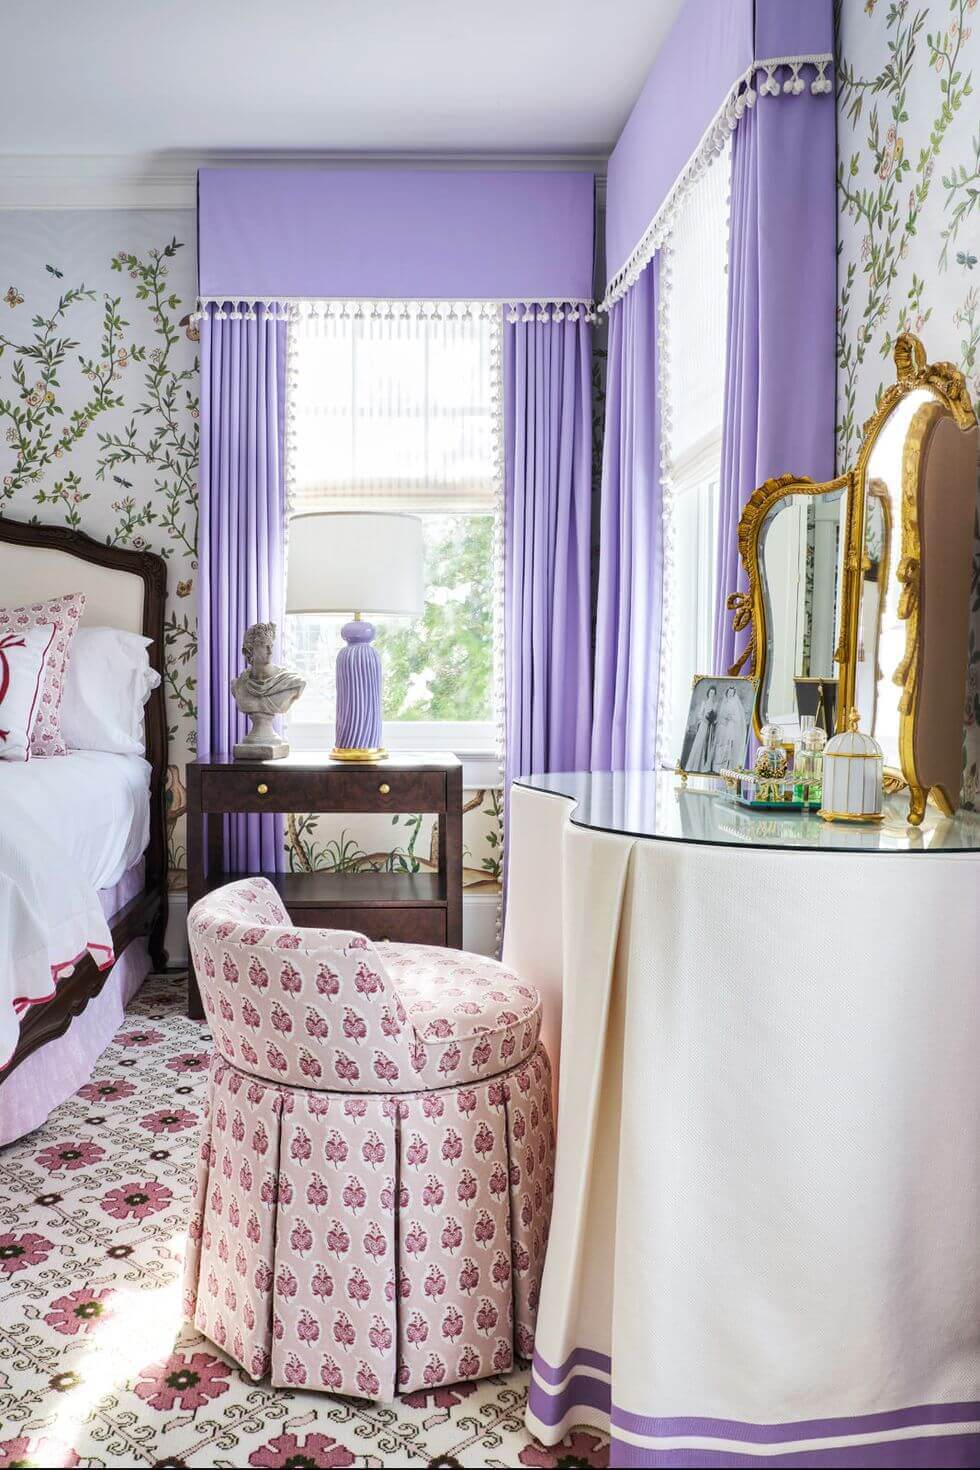 Pinterest Bedroom Ideas for Couples Make Room for a Vanity